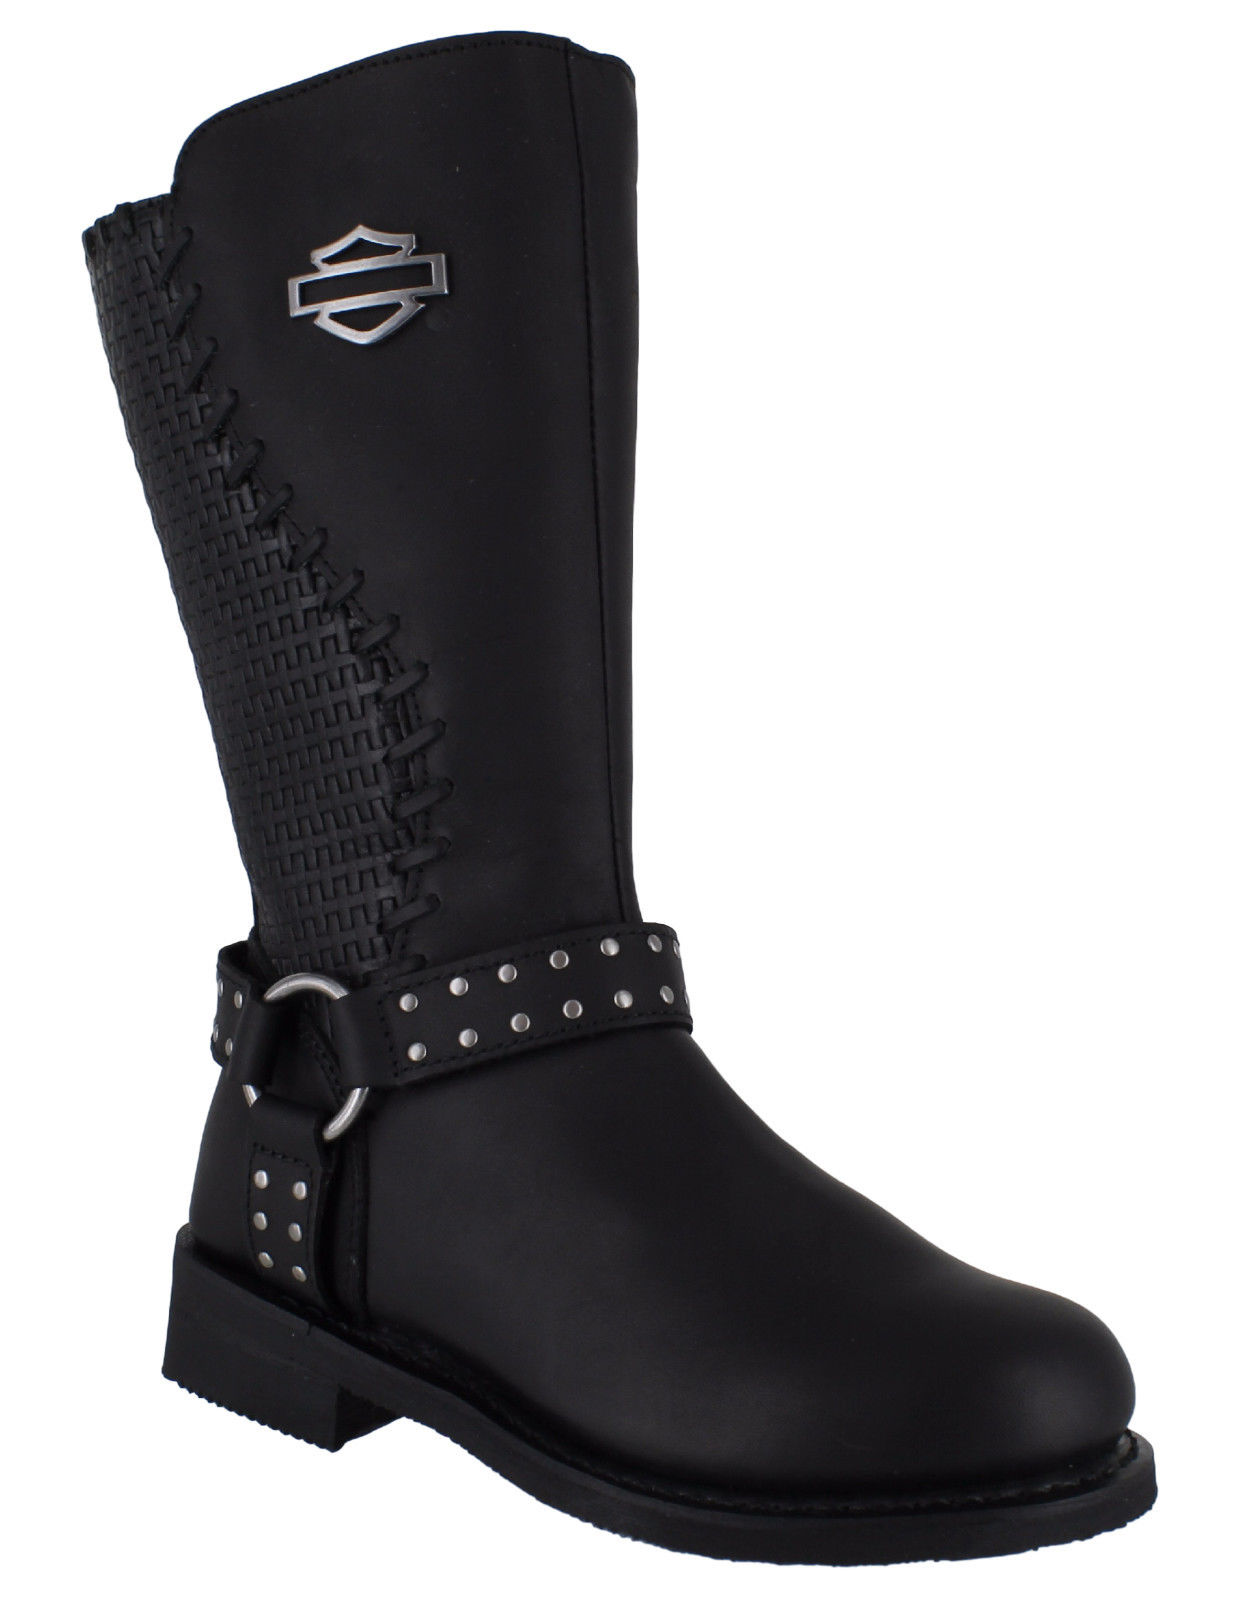 Wonderful Details About Harley Davidson Shirley Women Leather Motorcycle Boot